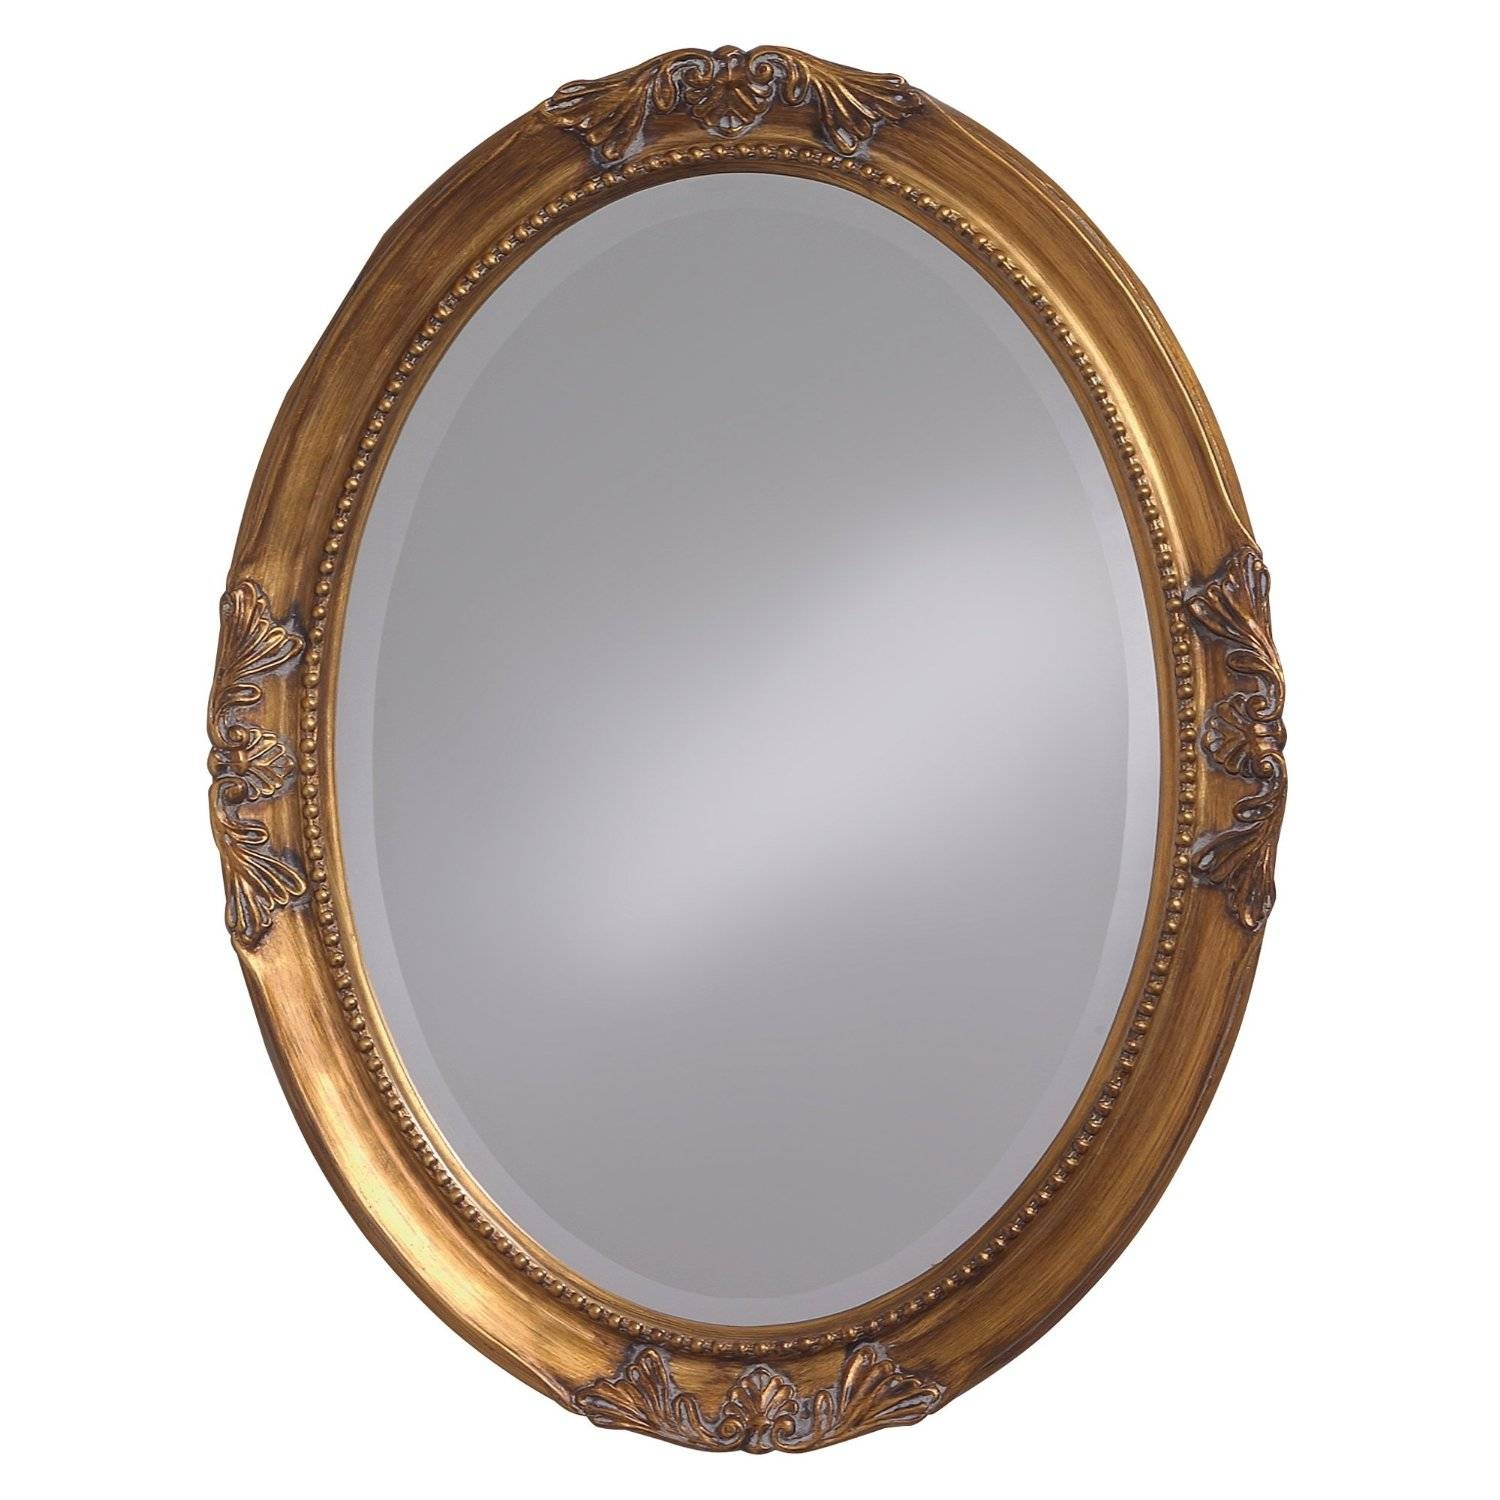 16 Ornate Mirrors For Your Home | Qosy with Antique Round Mirrors (Image 1 of 25)